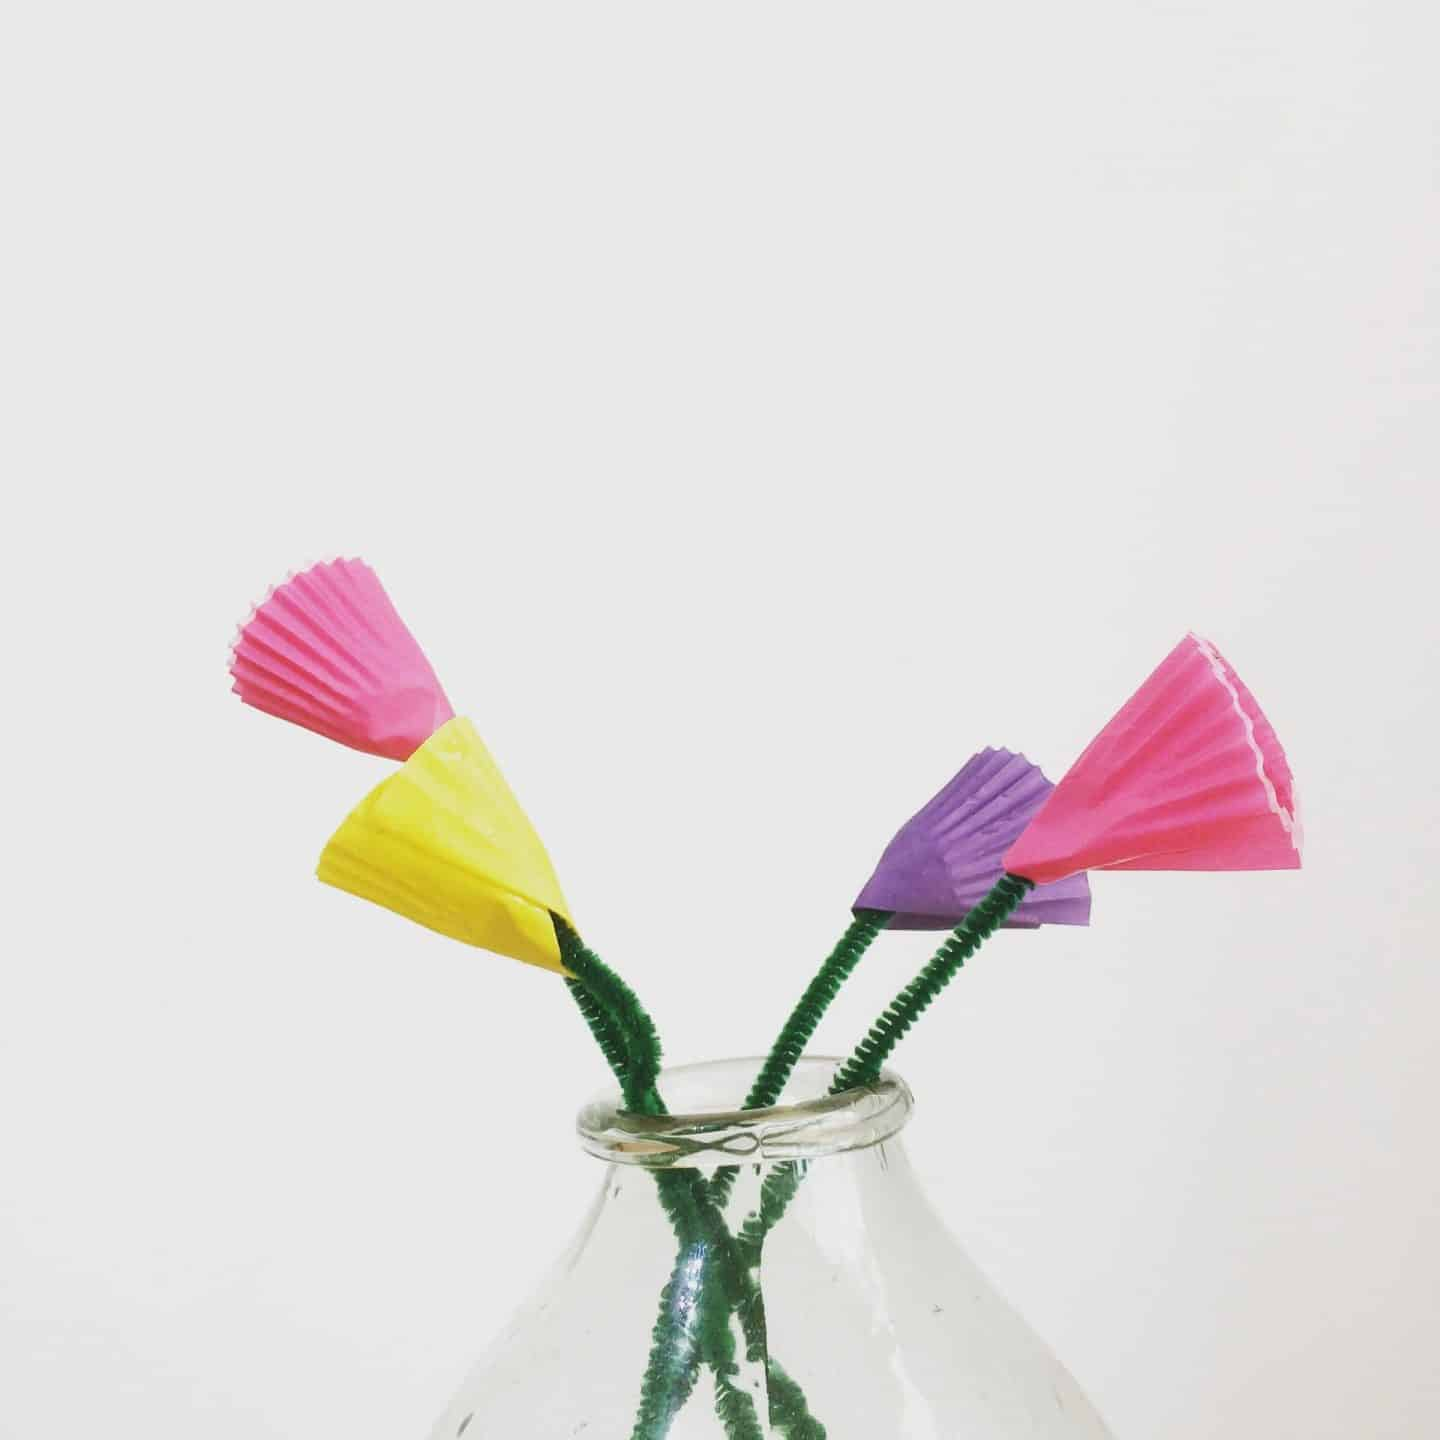 4 Super Simple Flower Crafts